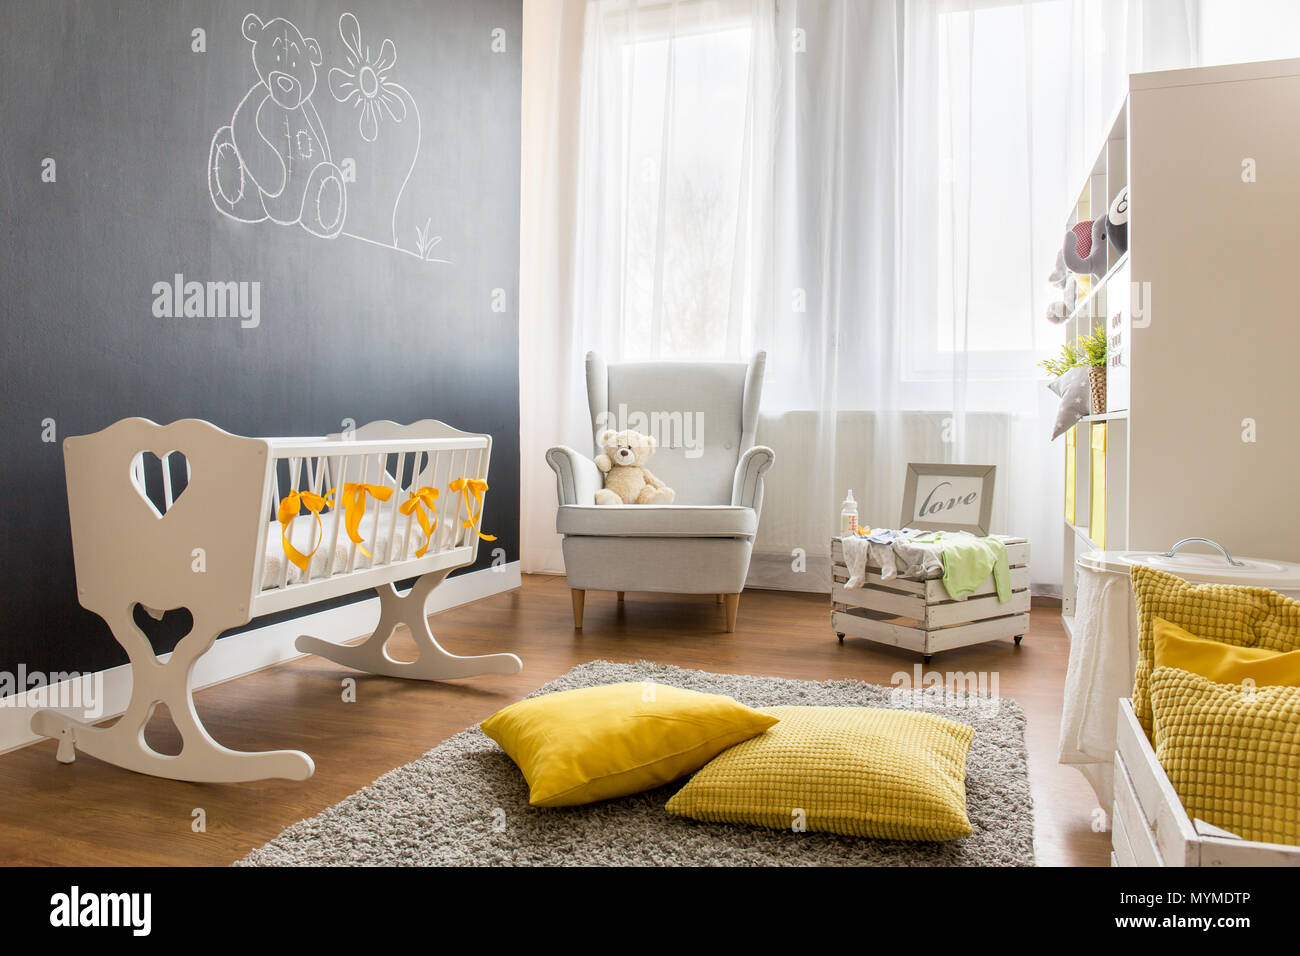 Shot of a spacious modern nursery room with a chalkboard wall - Stock Image